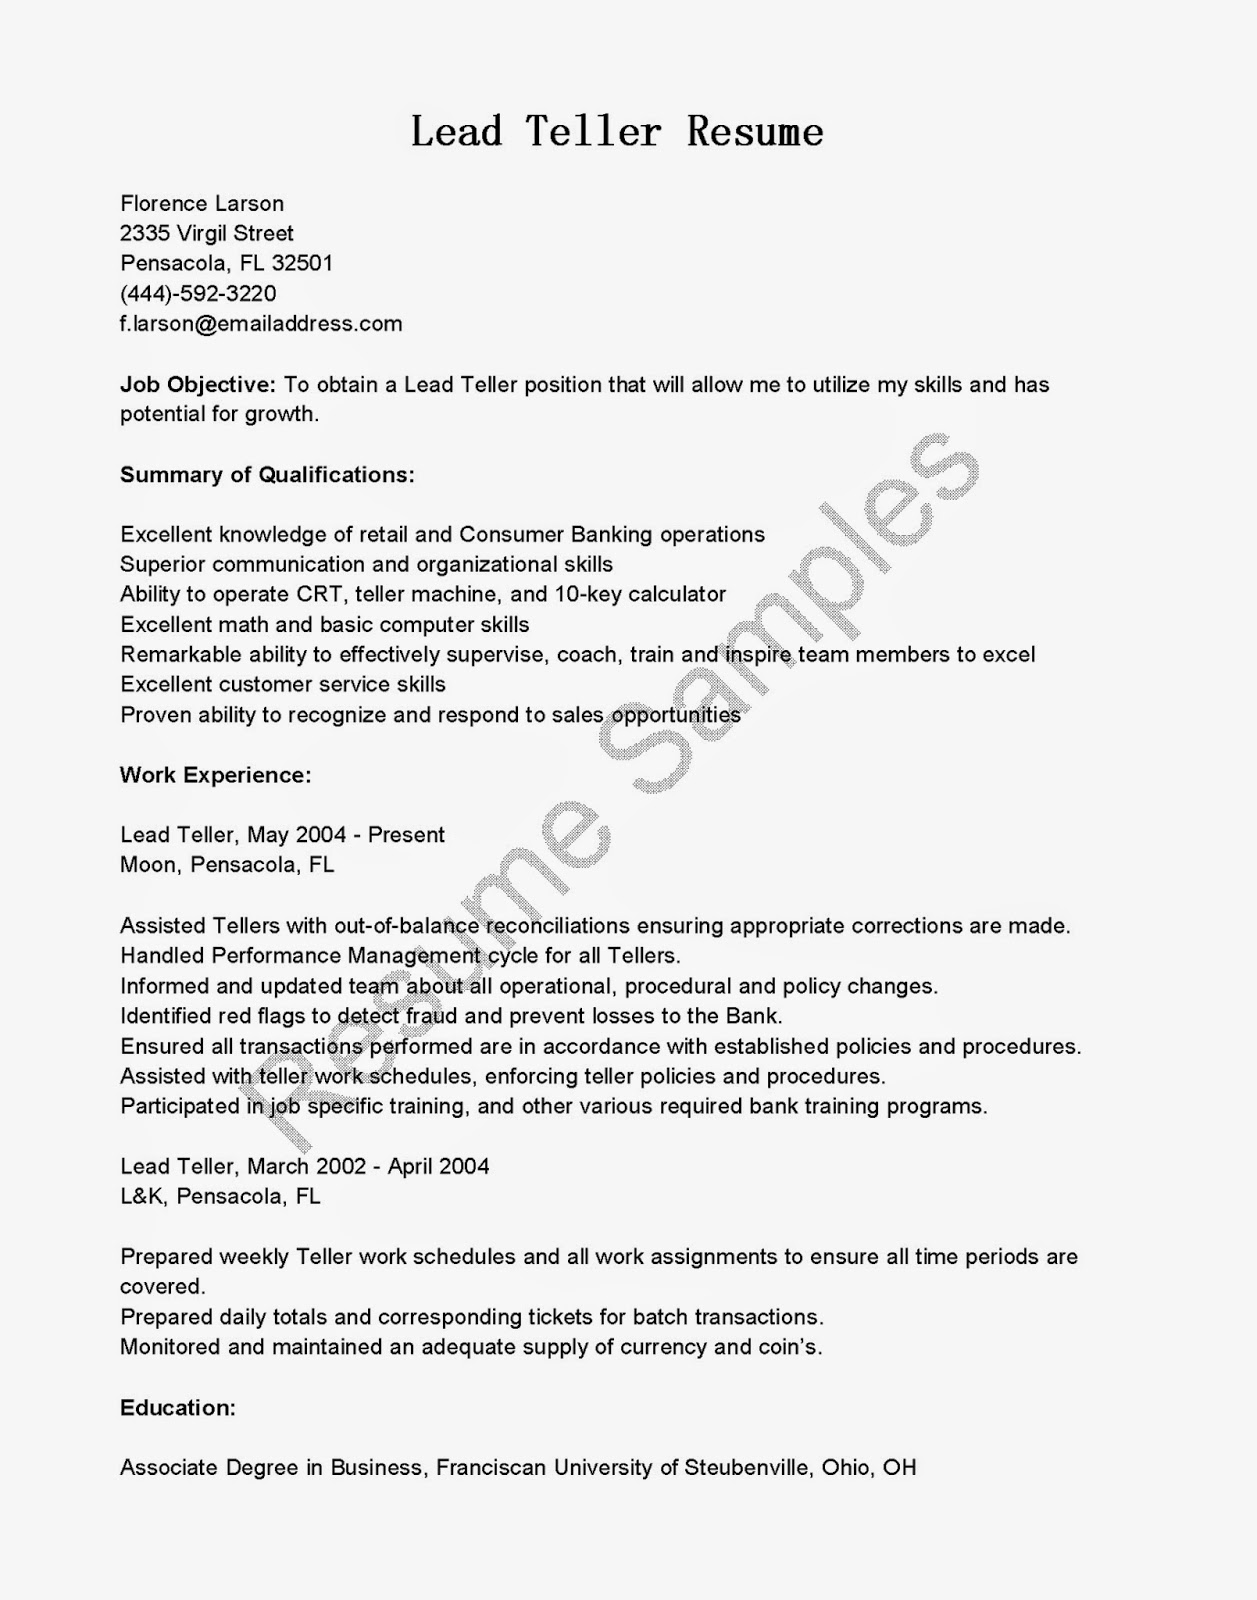 Resume Samples Lead Teller Resume Sample